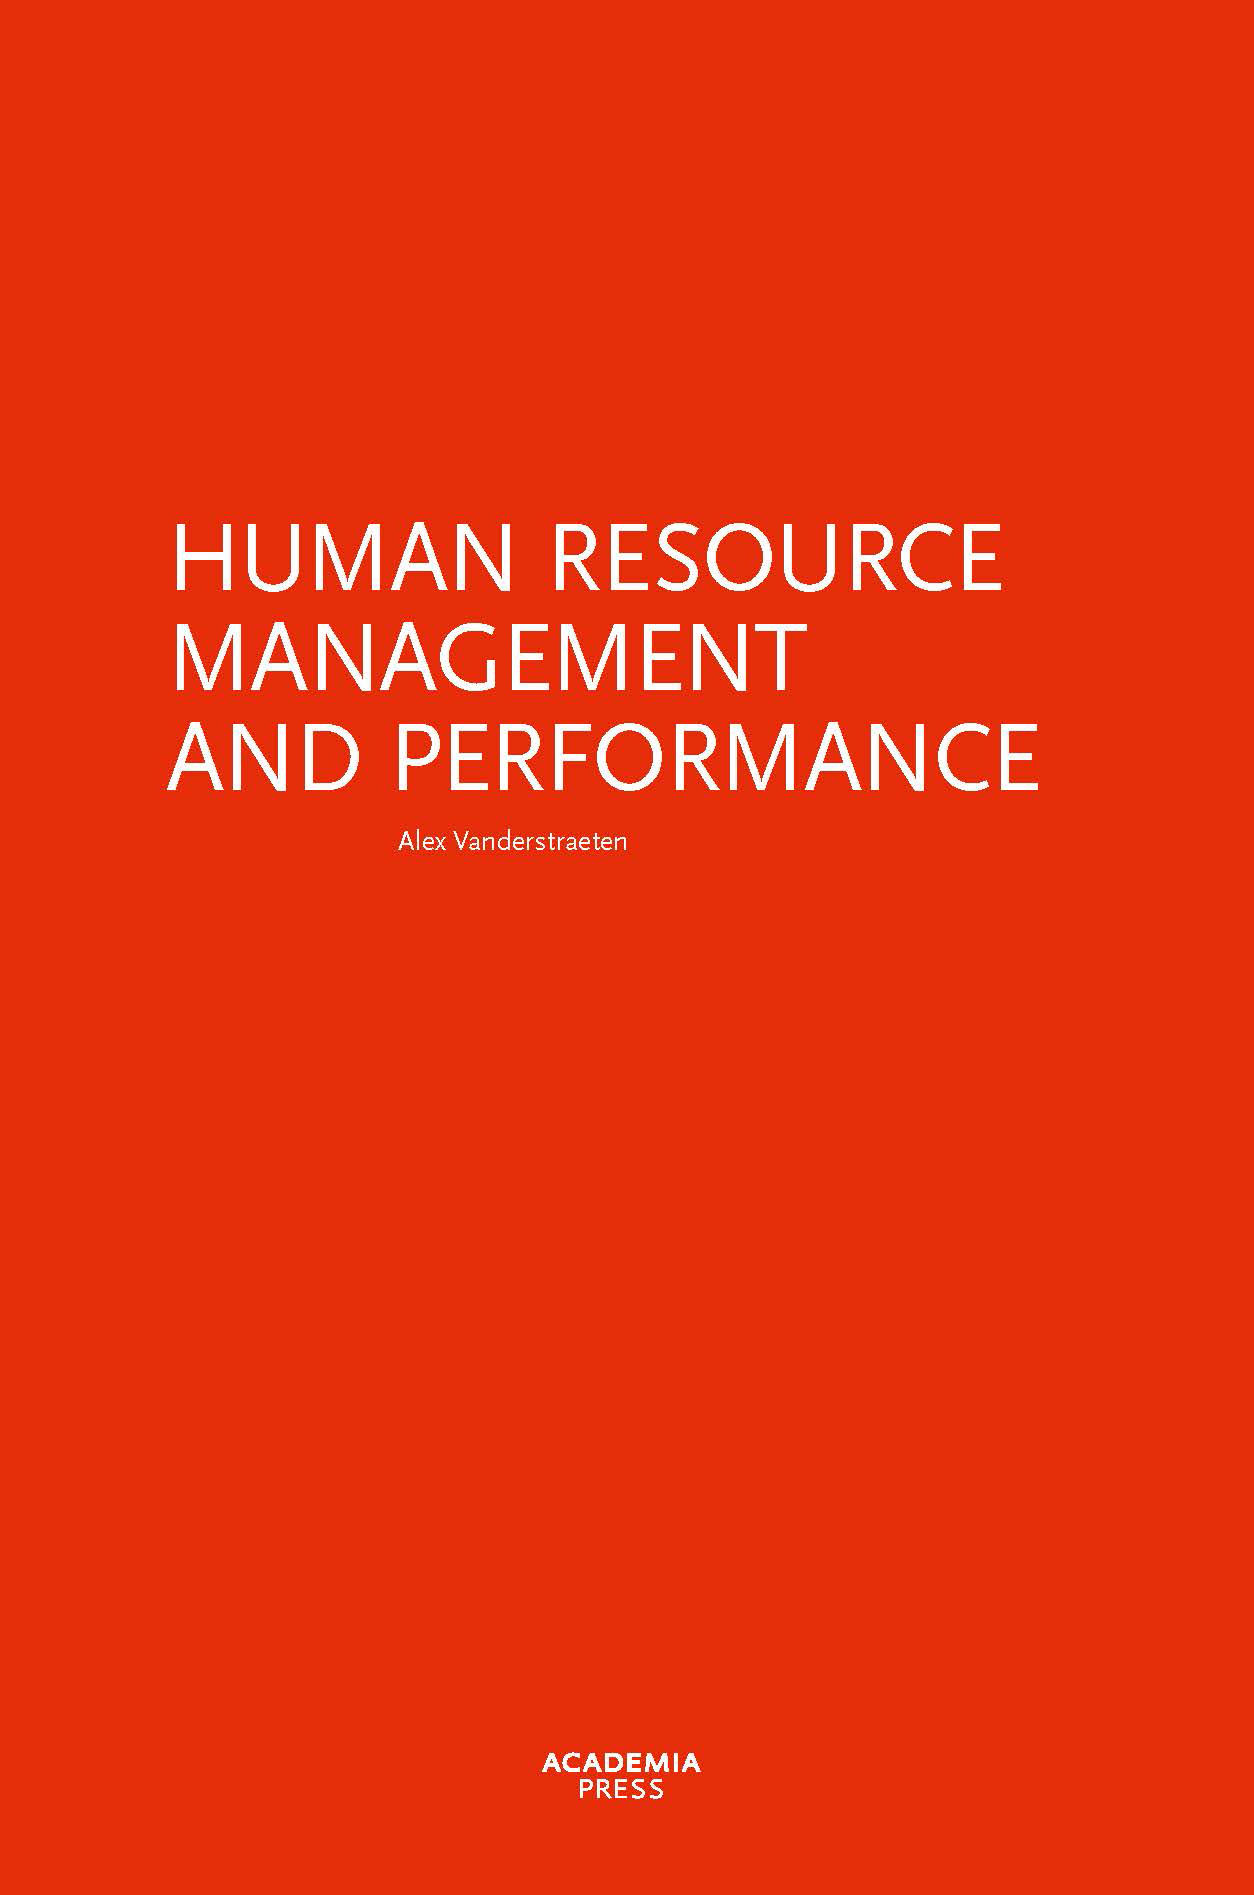 human resource management and performance still Human resource management (hrm) is the process of managing people in organizations in a structured and thorough manner hr manager is responsible for managing employee expectations vis-à-vis the management objectives.